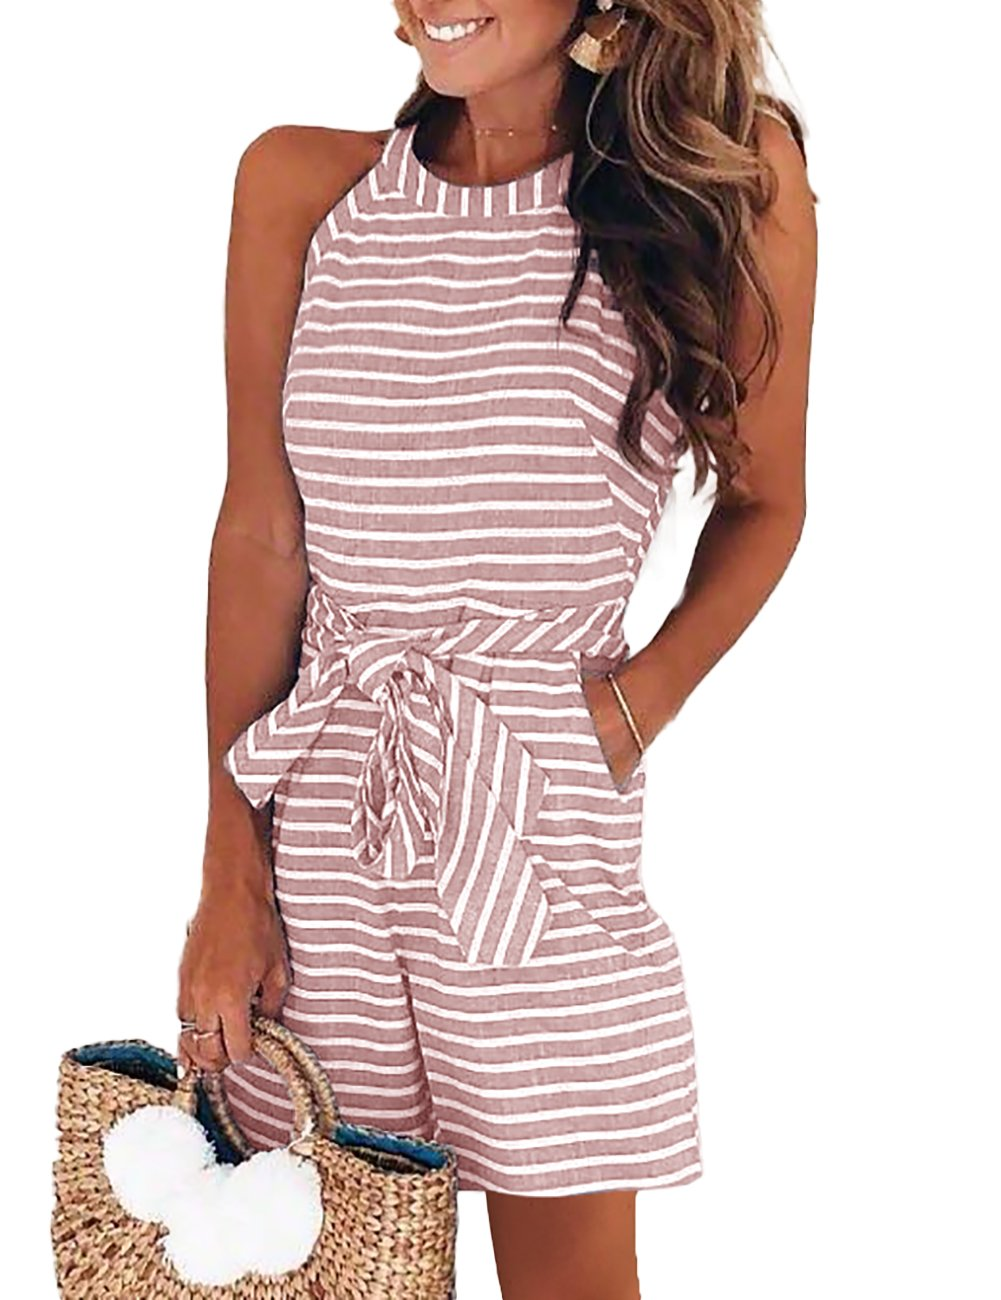 DUBACH Women Casual Striped Sleeveless Short Romper Jumpsuit S Pink